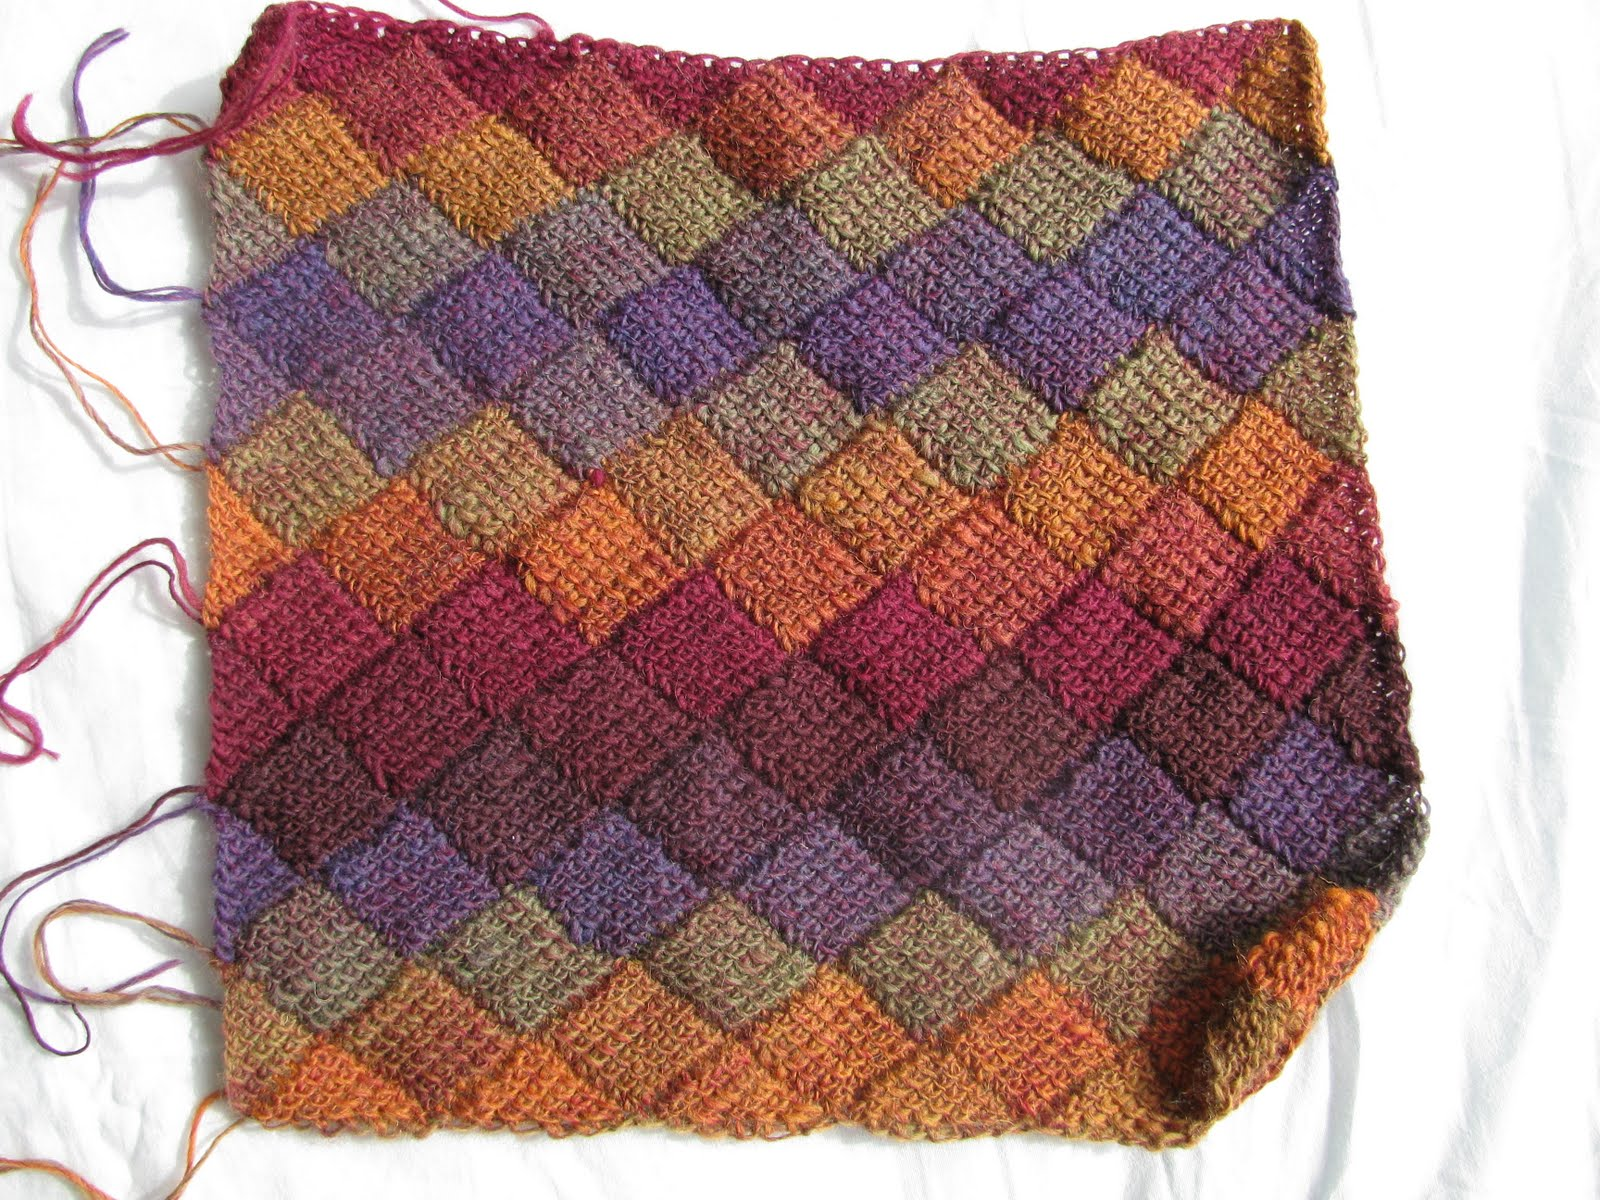 Knitting Stitch Patterns Entrelac : The Kenneth St Boudoir: April 2011